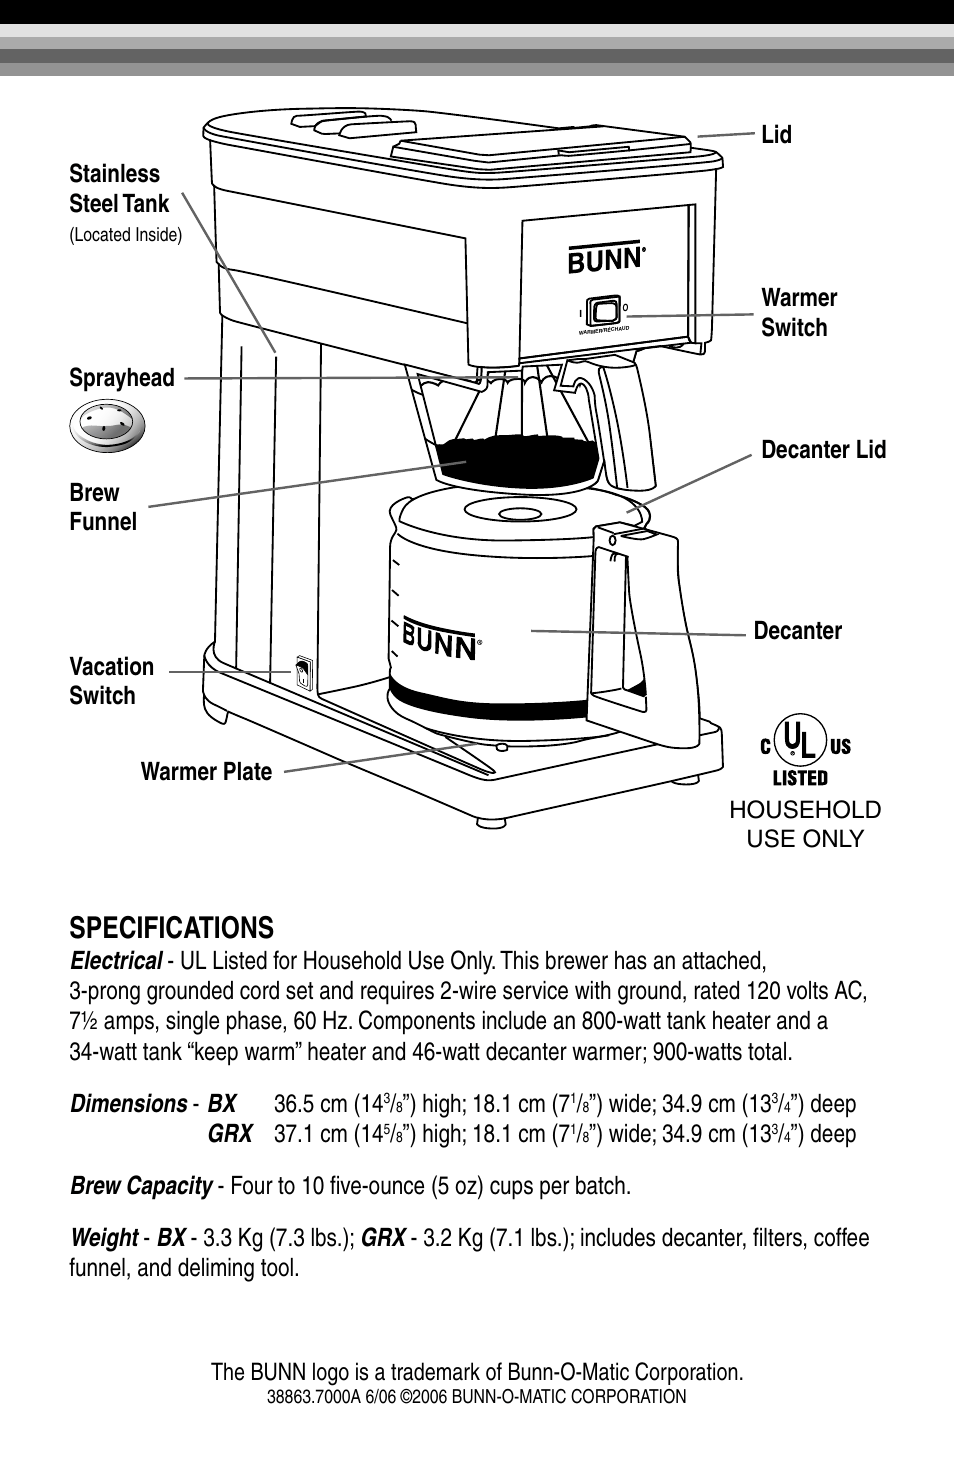 hight resolution of bunn grx b parts wiring diagrams wiring diagram specifications high 18 1 cm 7 sprayhead brew funnel vacation switch decanter